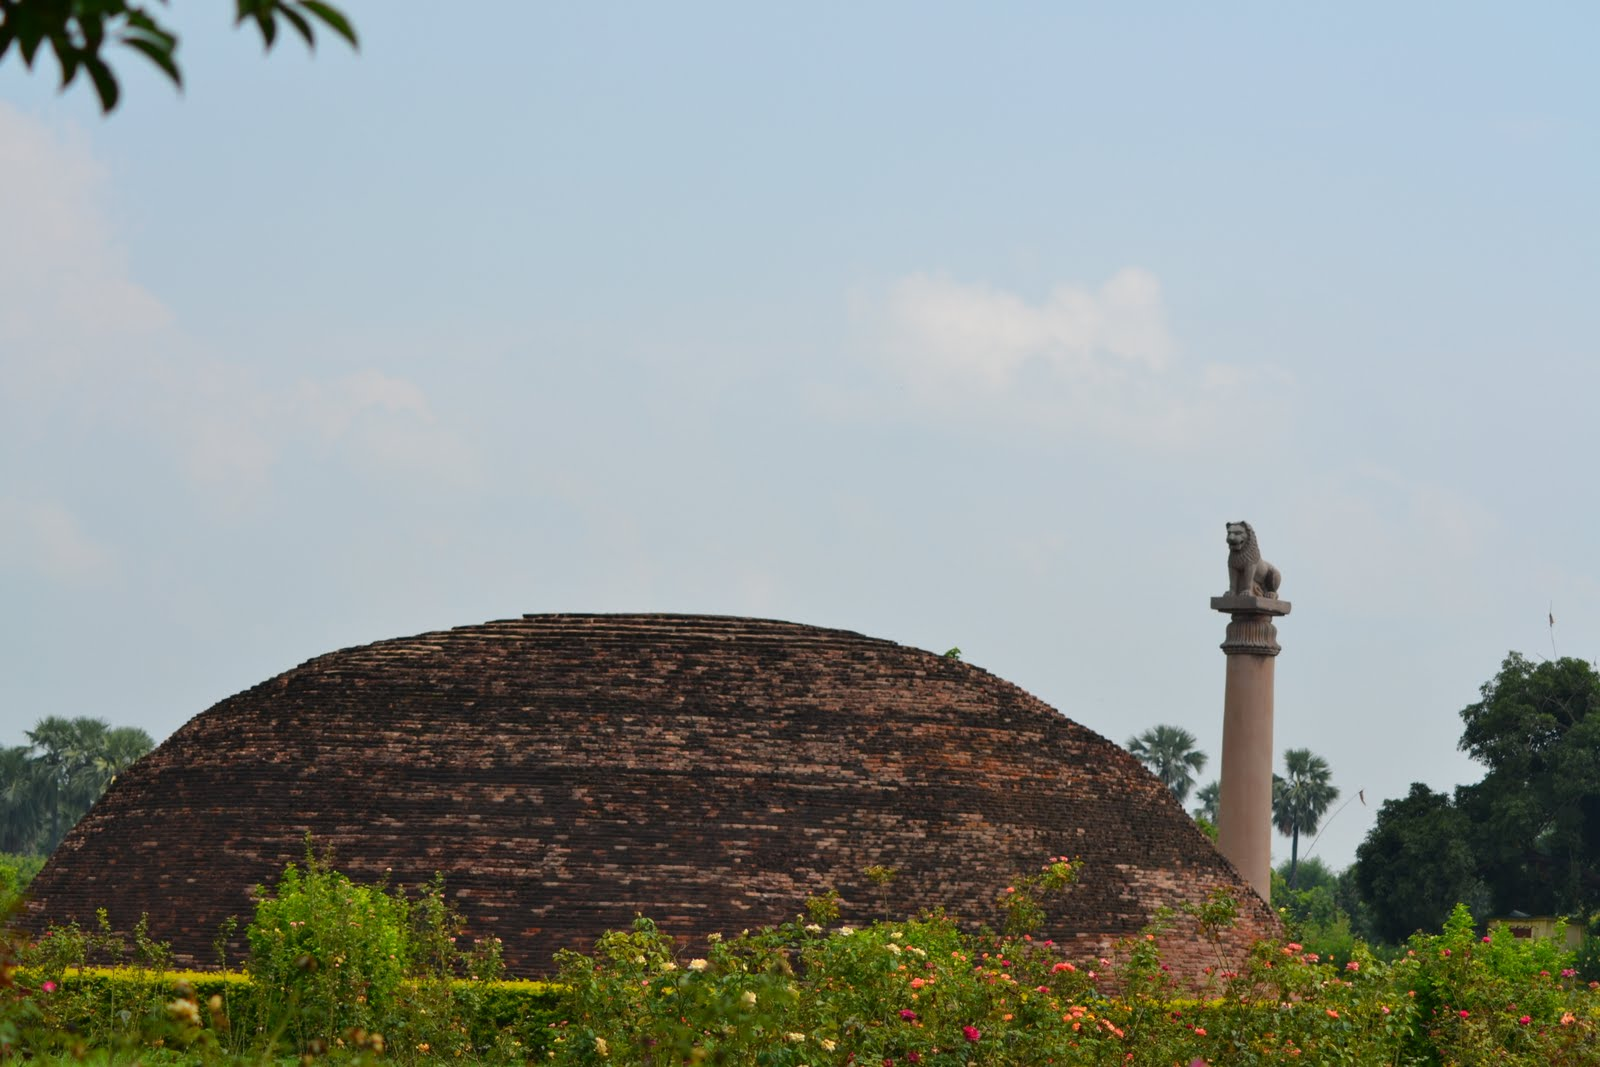 Remains of ancient vaishali , Ashoka pillar and remains of stupa